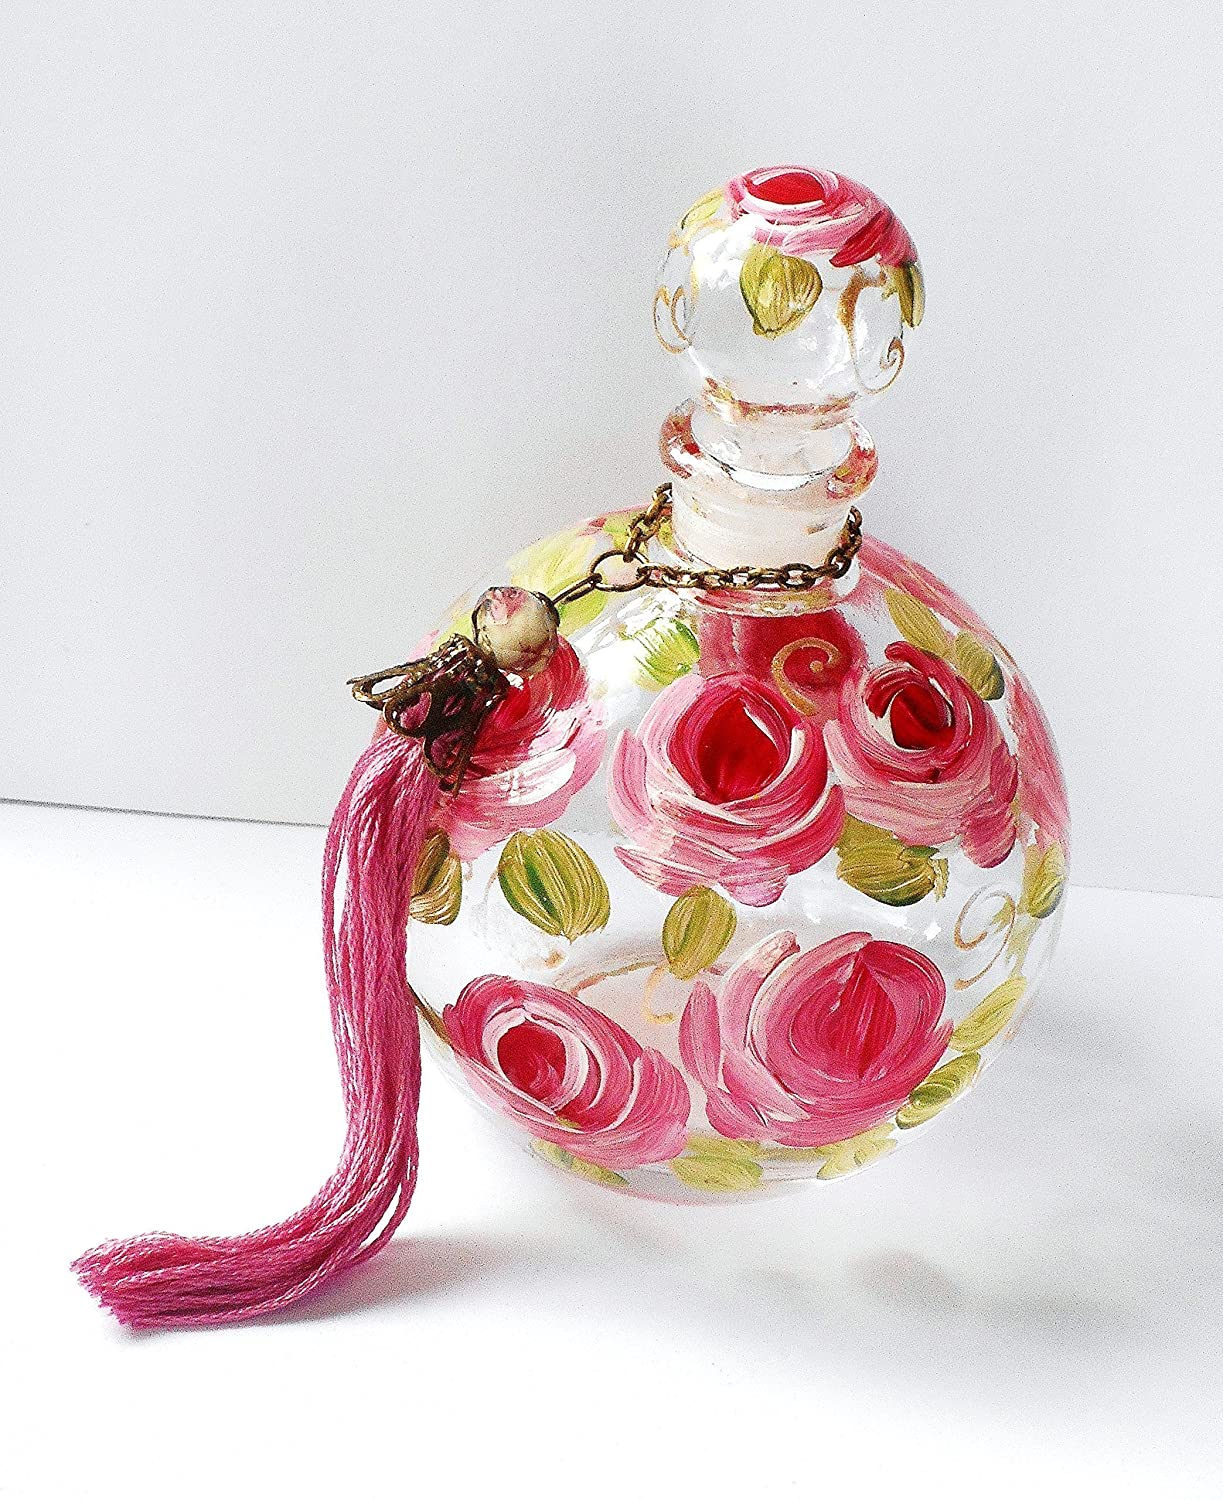 Hand Painted Rose Large Round Empty Glass Perfume Bottle with Stopper Cap and Handmade Tassel Home Décor Decorative Accessories